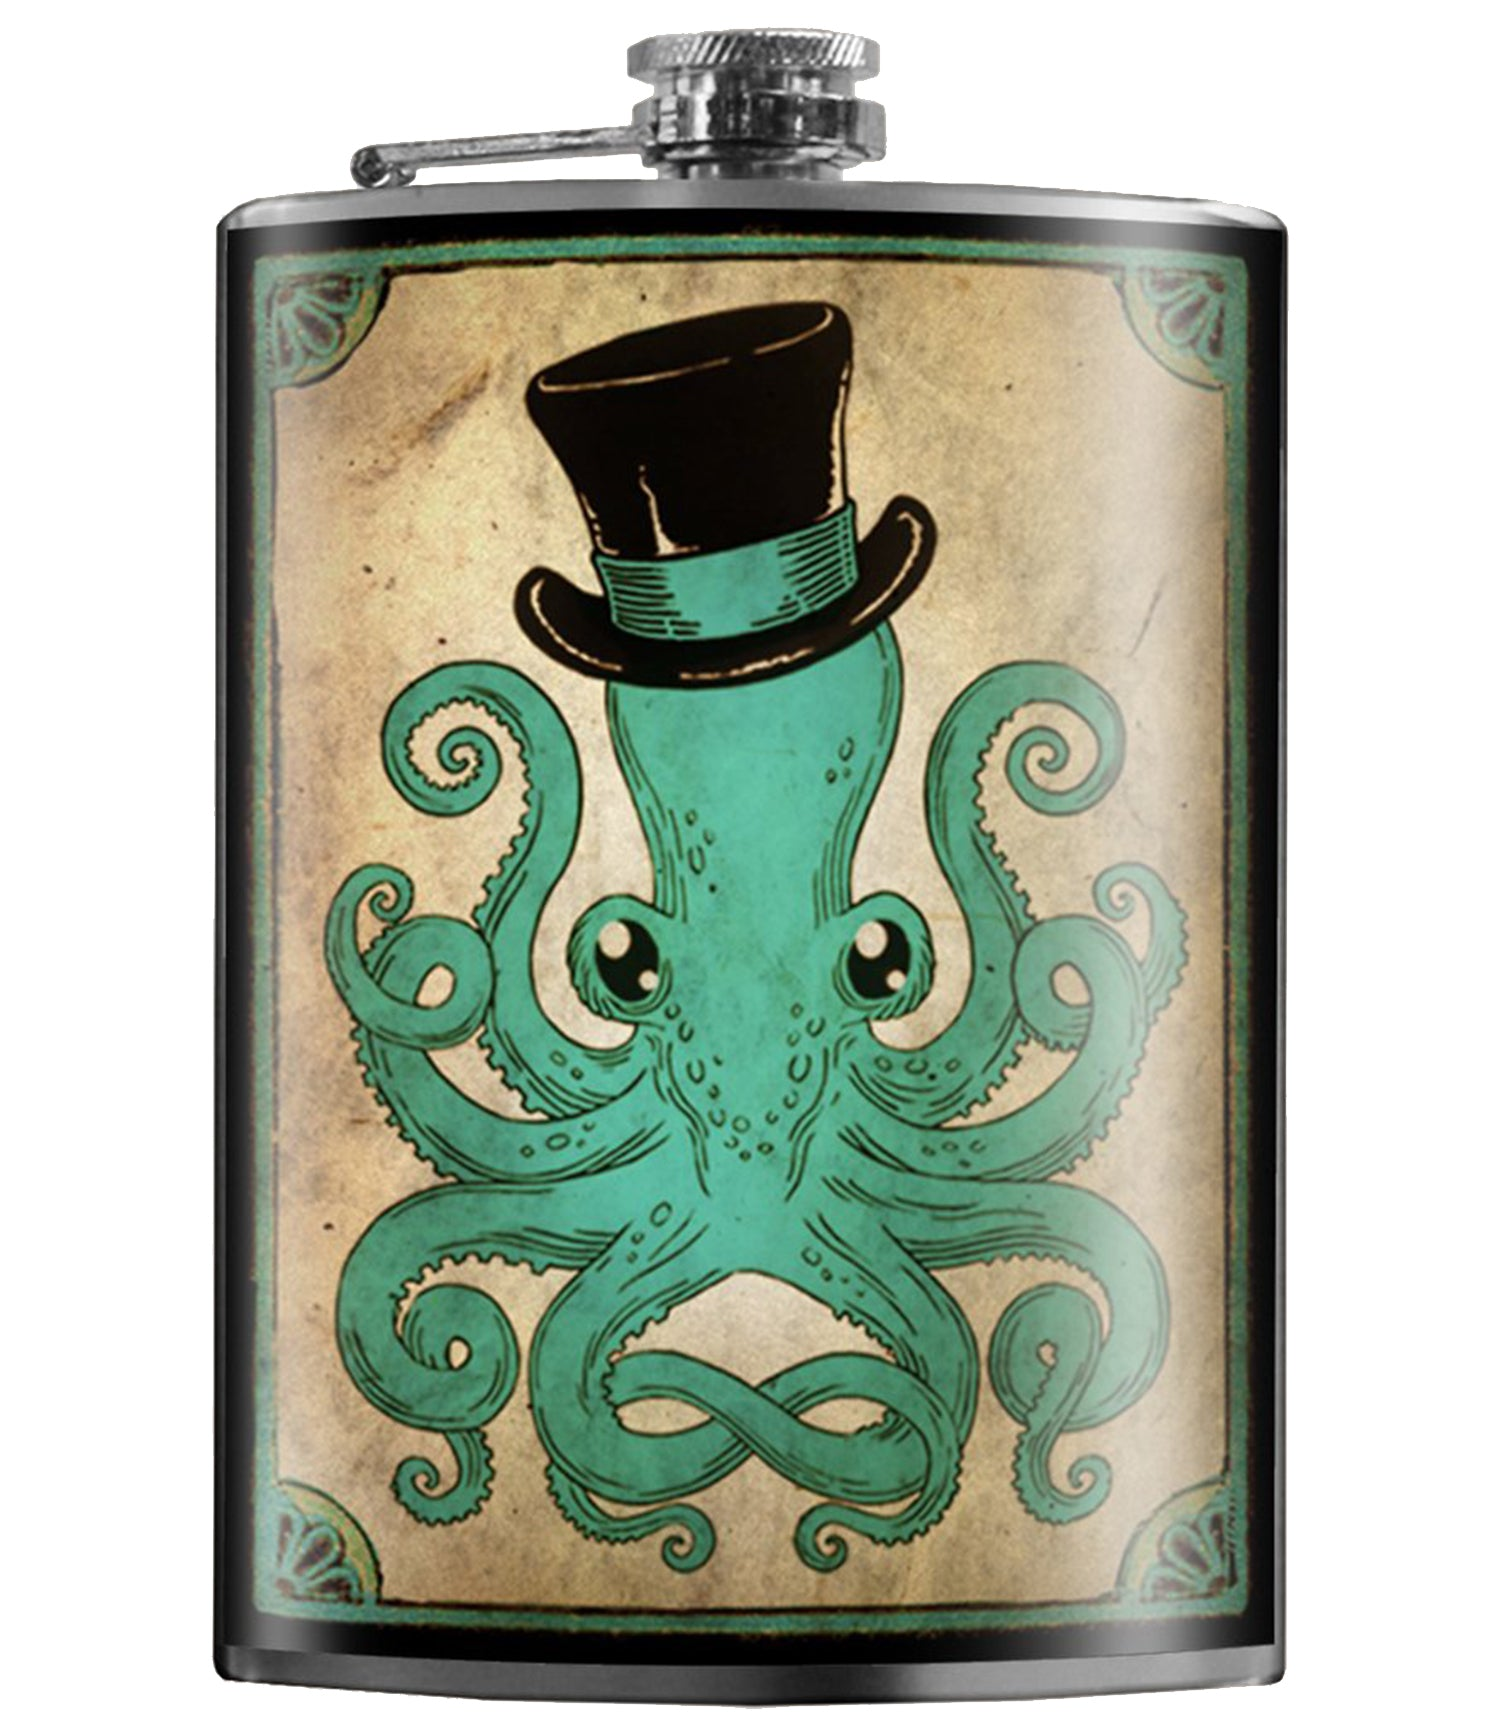 The GENTLEMAN OCTOPUS Stainless Steel Flask